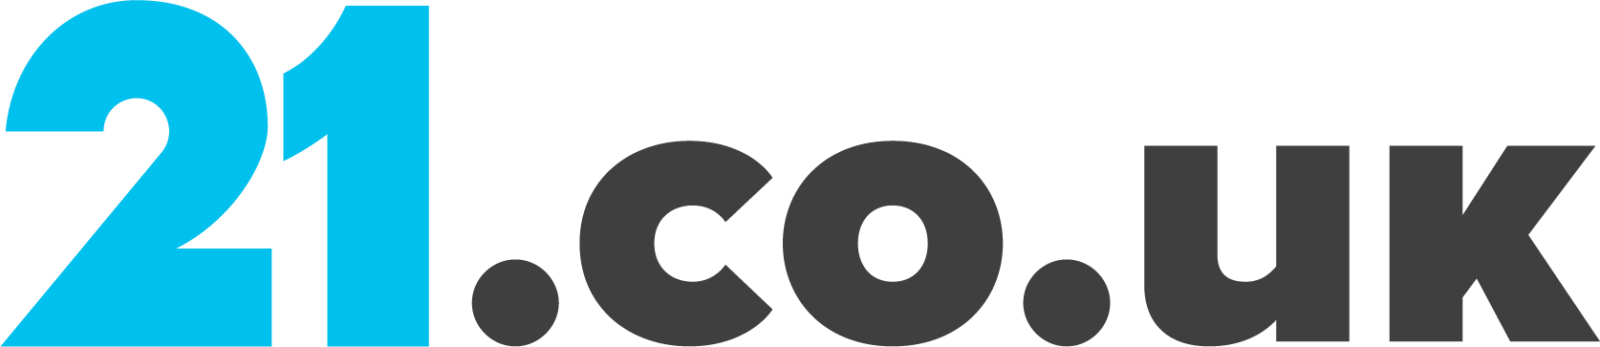 21.co.uk – Great Sports Betting Odds